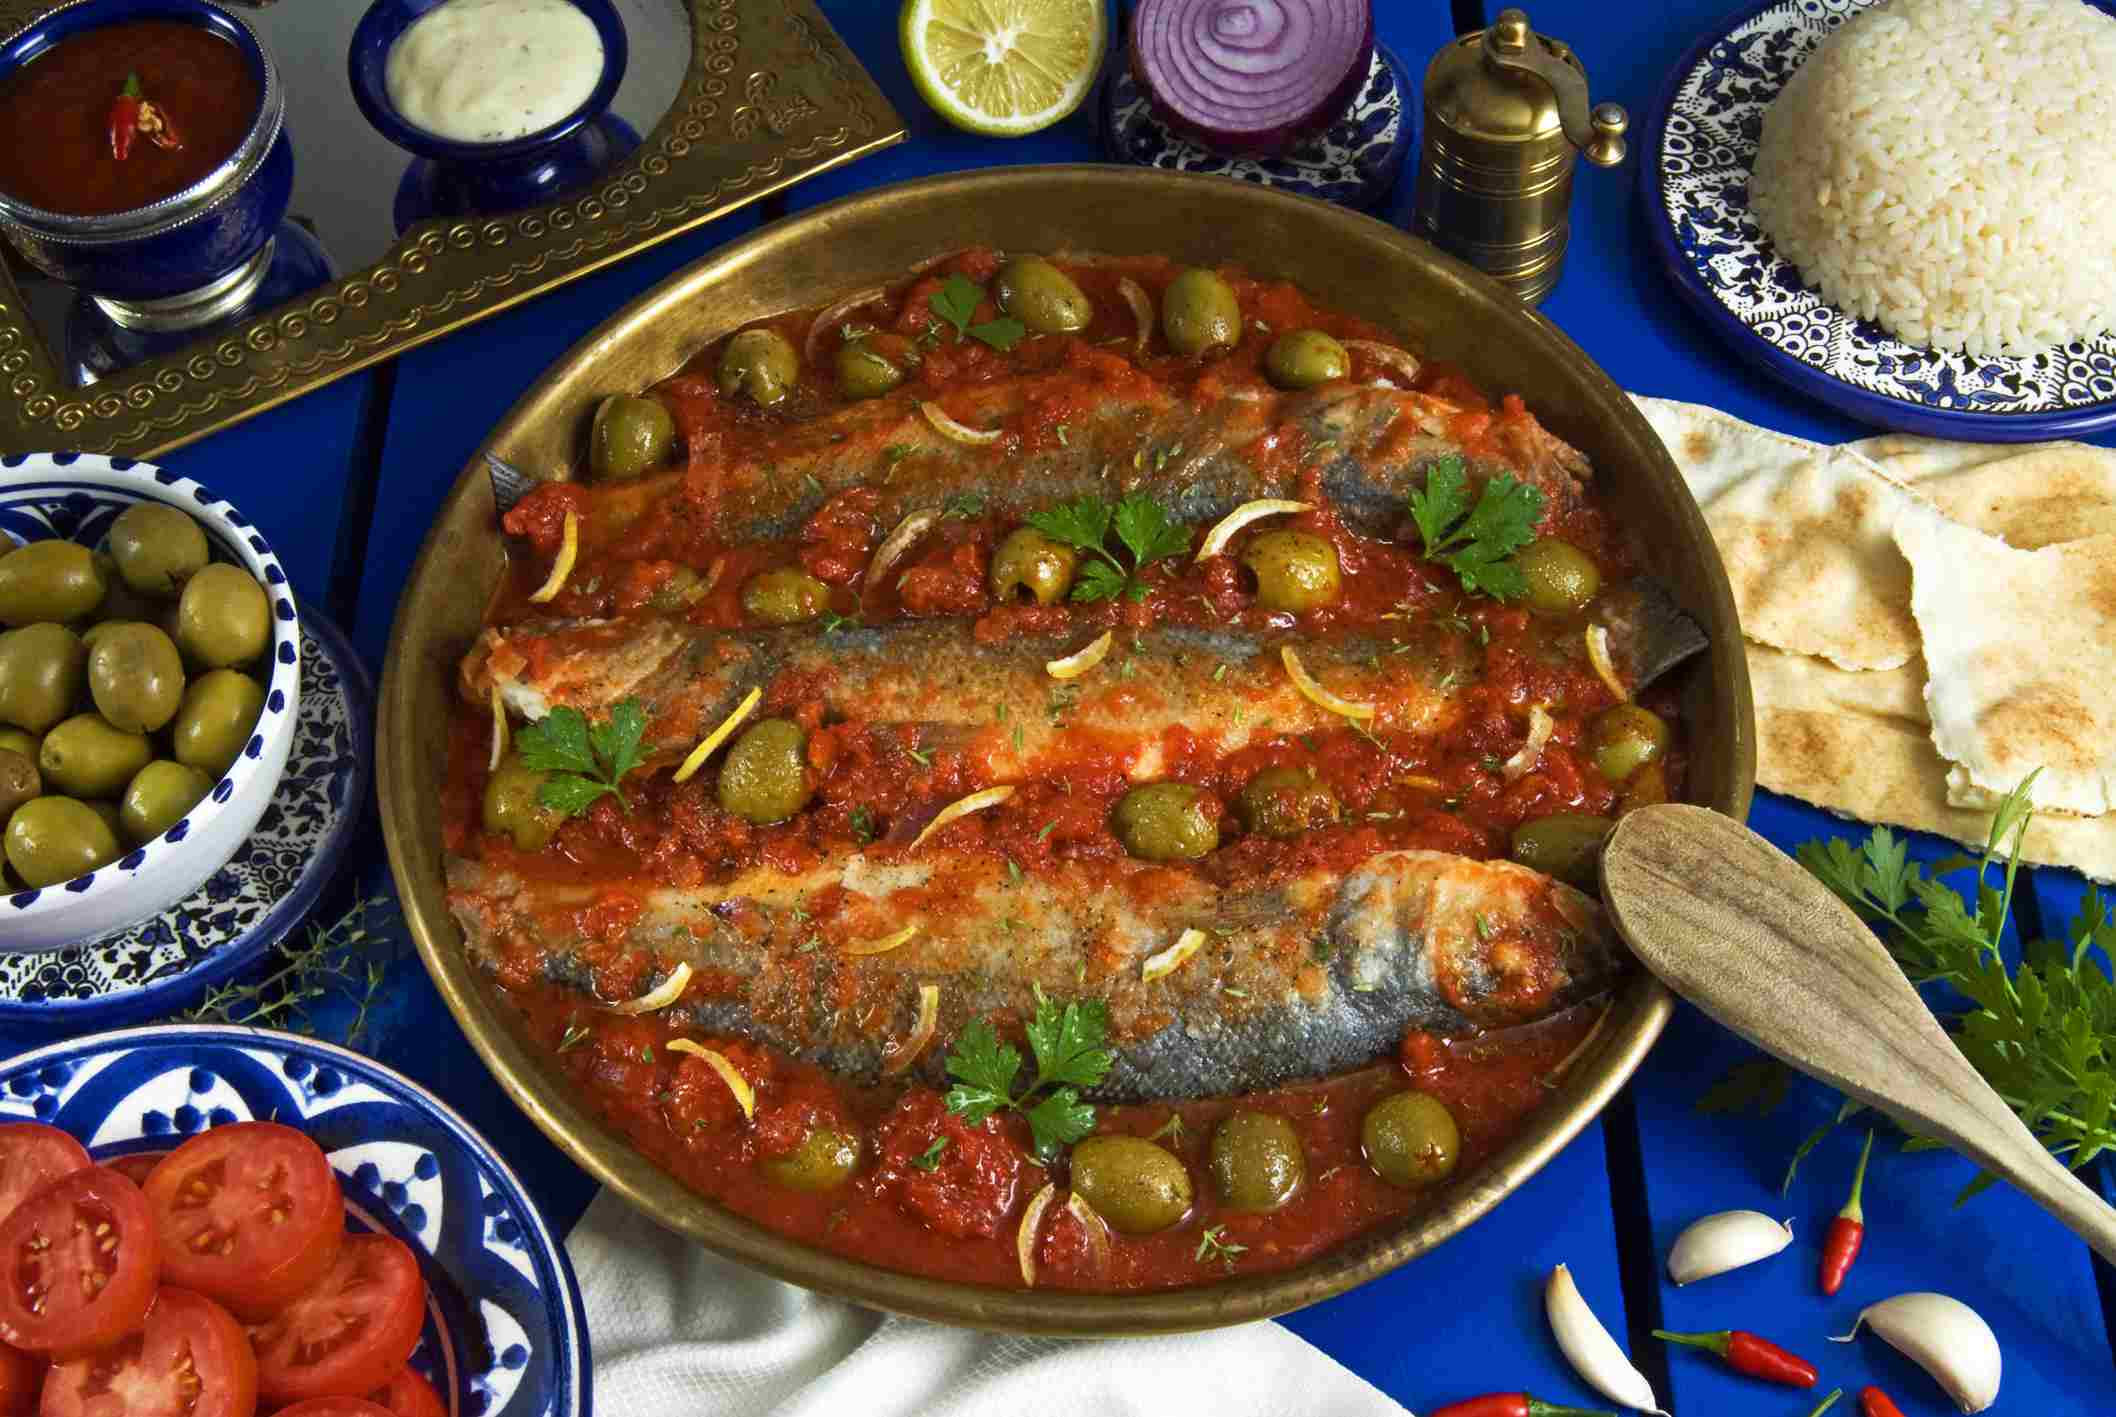 10 of the Best Traditional Dishes to Try in Egypt